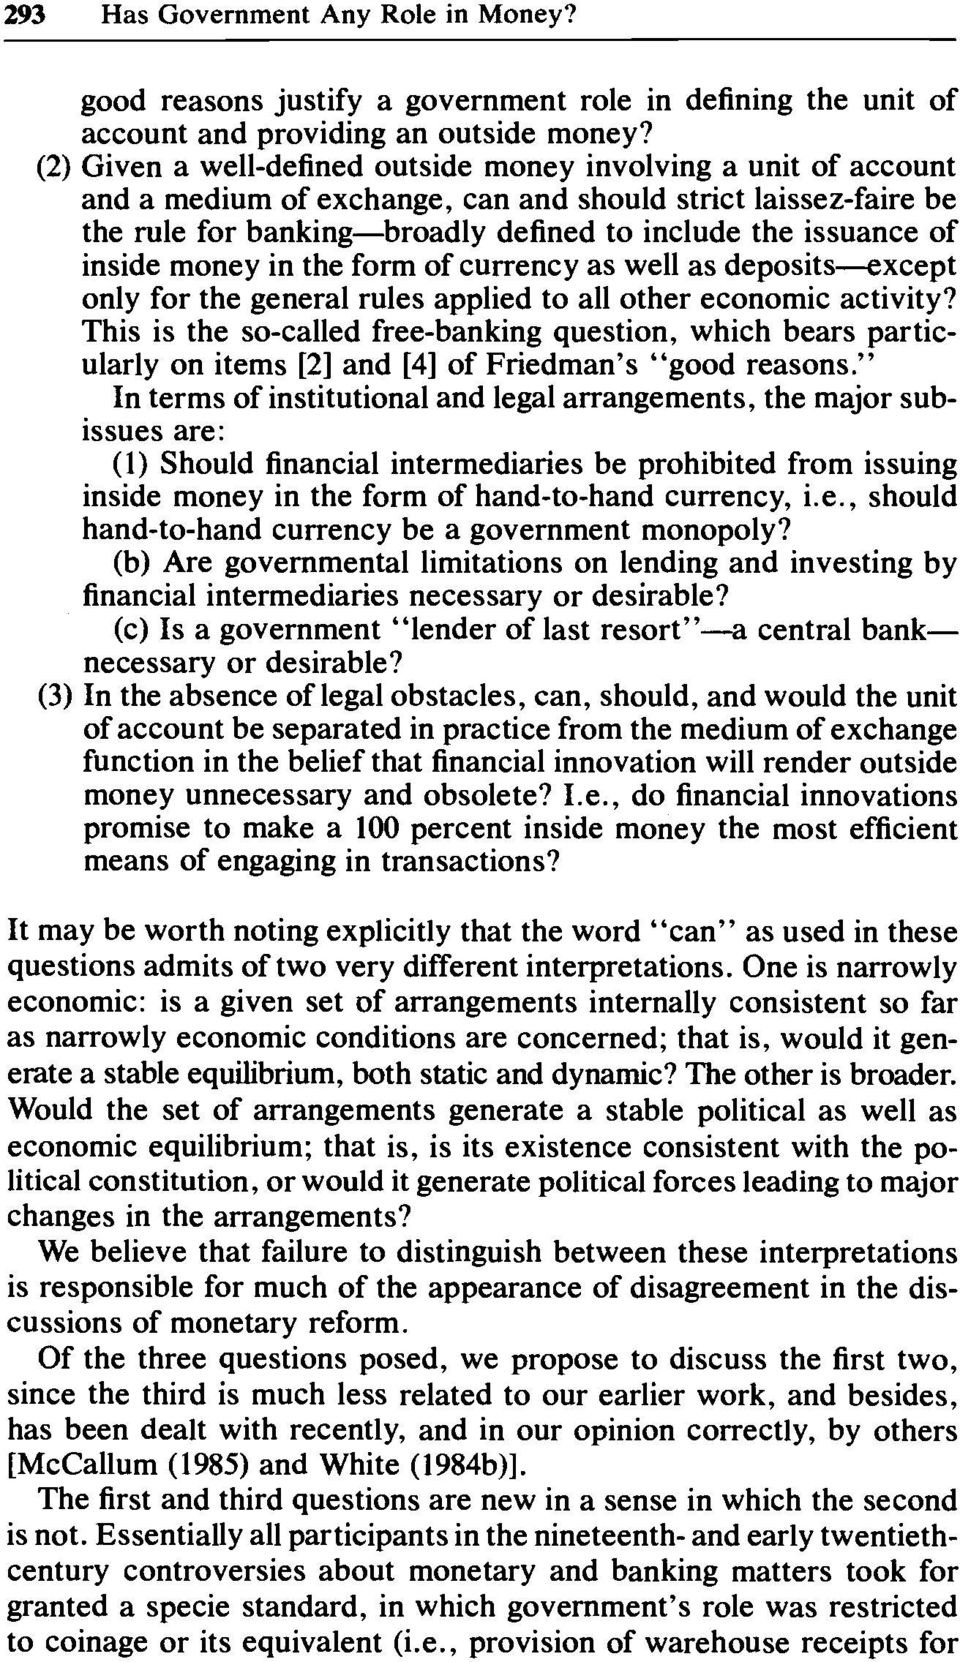 inside money in the form of currency as well as deposits-except only for the general rules applied to all other economic activity?